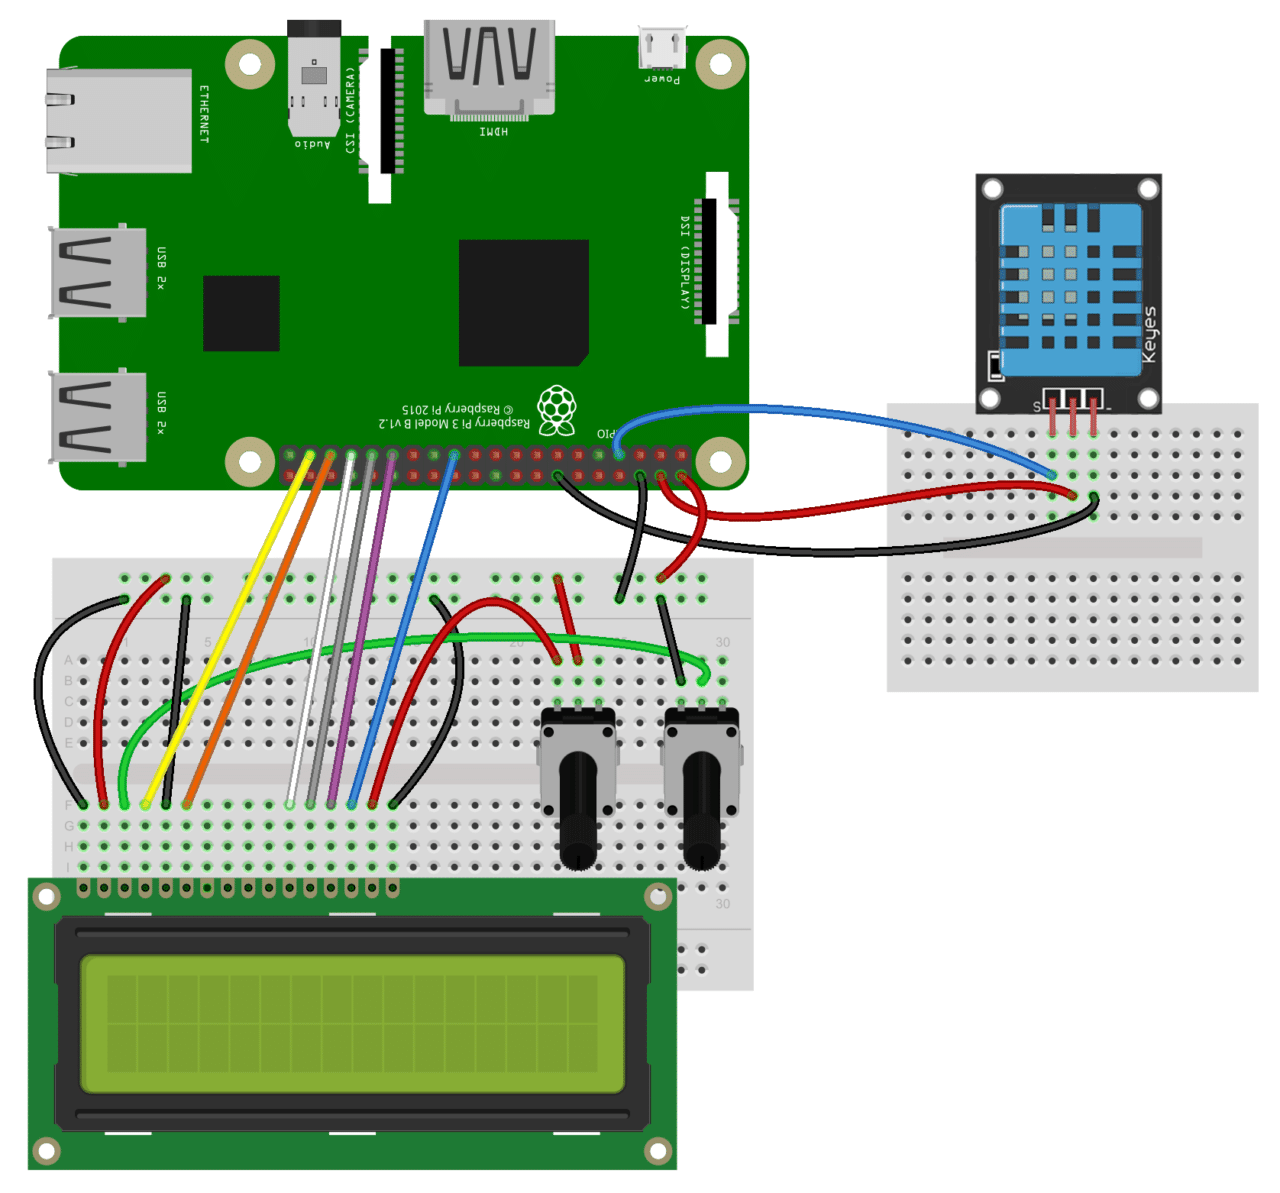 How to Setup the DHT11 on the Raspberry Pi Three pin DHT11 LCD Wiring Diagram how to set up the dht11 humidity sensor on the raspberry pi raspberry pi wiring diagram at arjmand.co